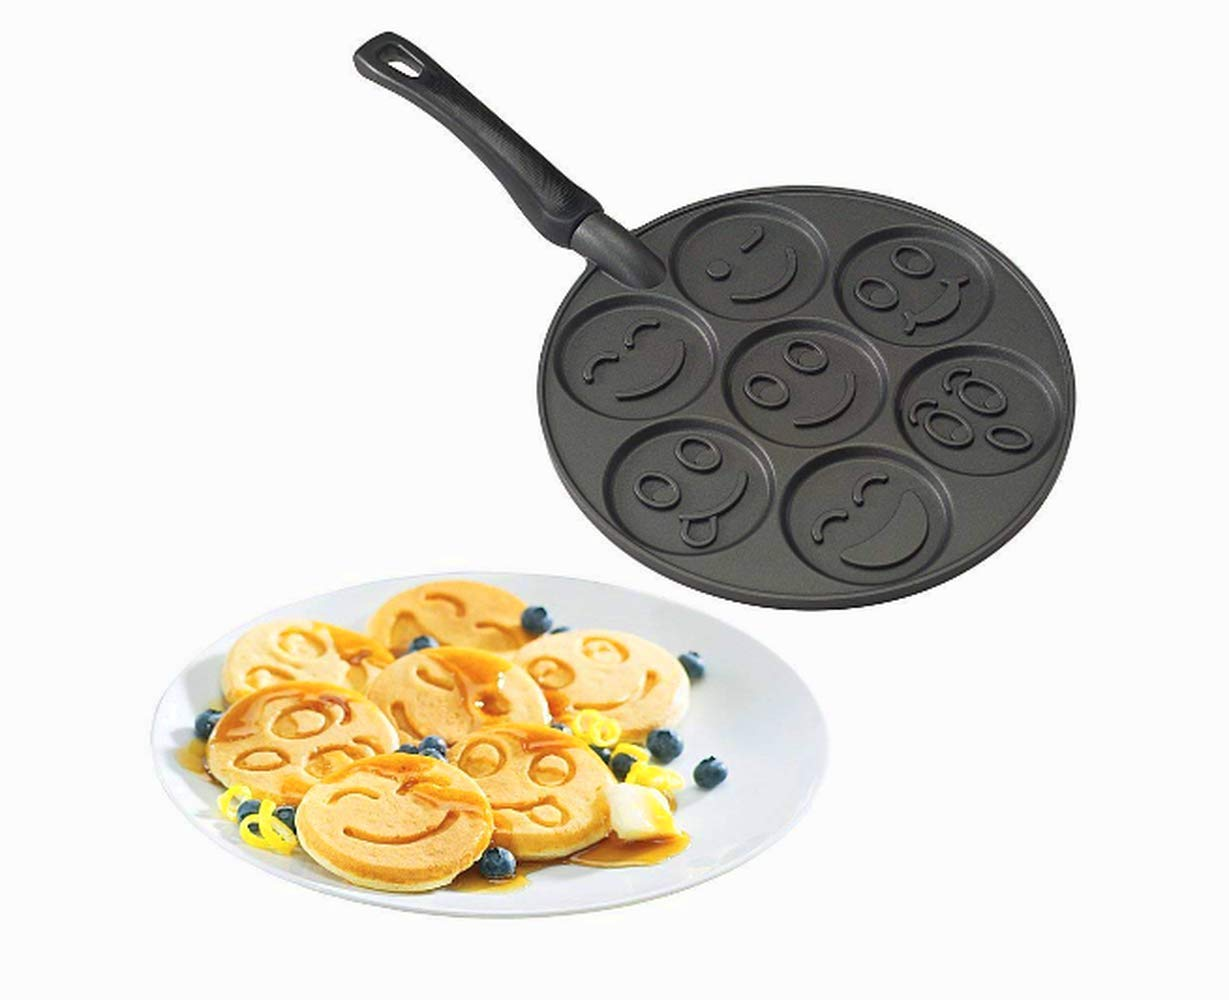 Mini Pancake Pan Non-Stick, Premium Quality, Black Color, 7 Different Emojis, Pancake For Kids, Aluminum, Smiley Faces, Breakfast Maker, Uniform-Baked Pancakes & E-Book Home Decor